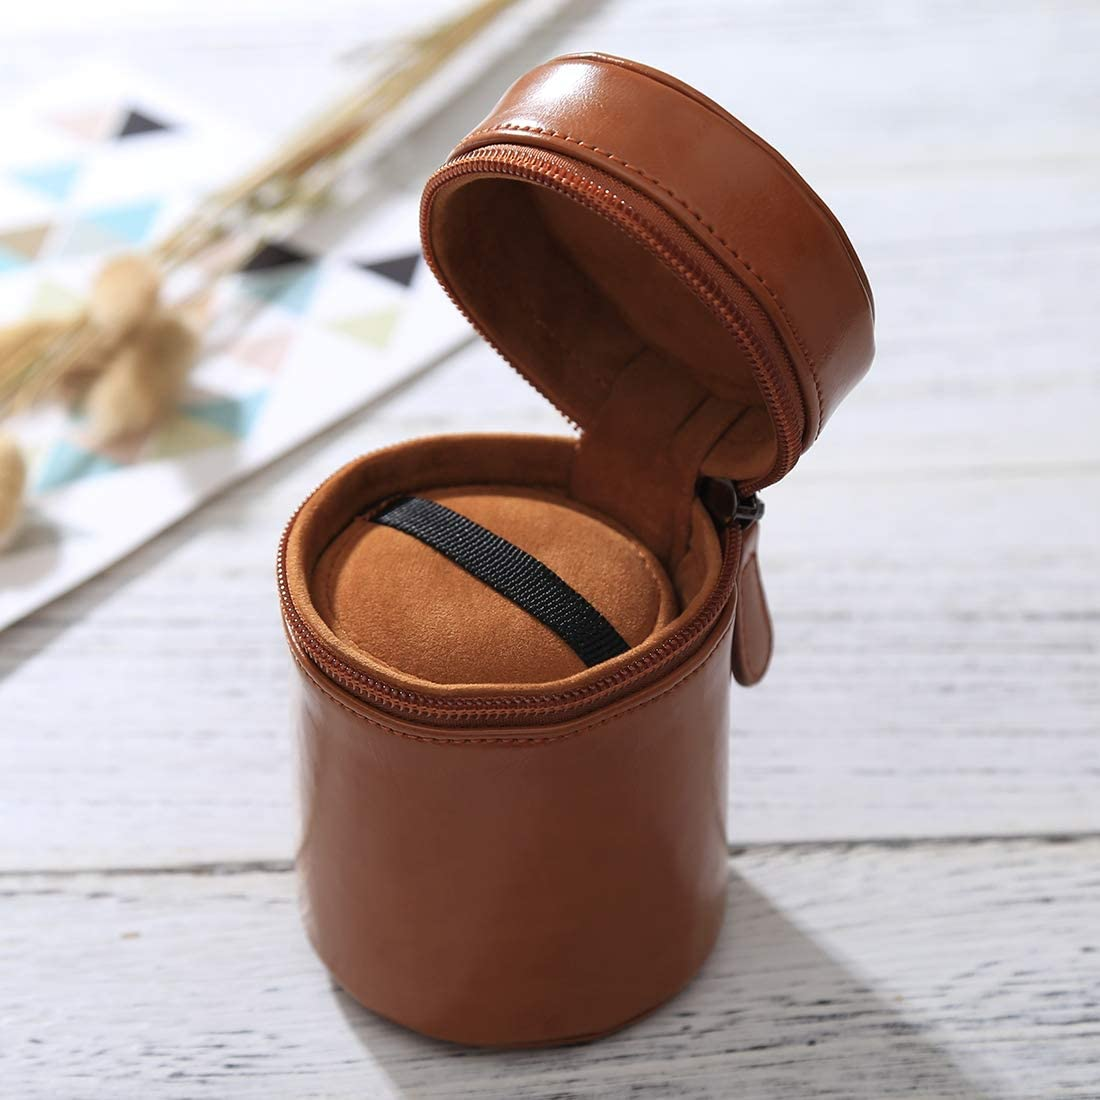 Black WEIHONG Color : Brown Size: 11x8x8cm WEIHONG Bag Small Lens Case Zippered PU Leather Pouch Box for DSLR Camera Lens